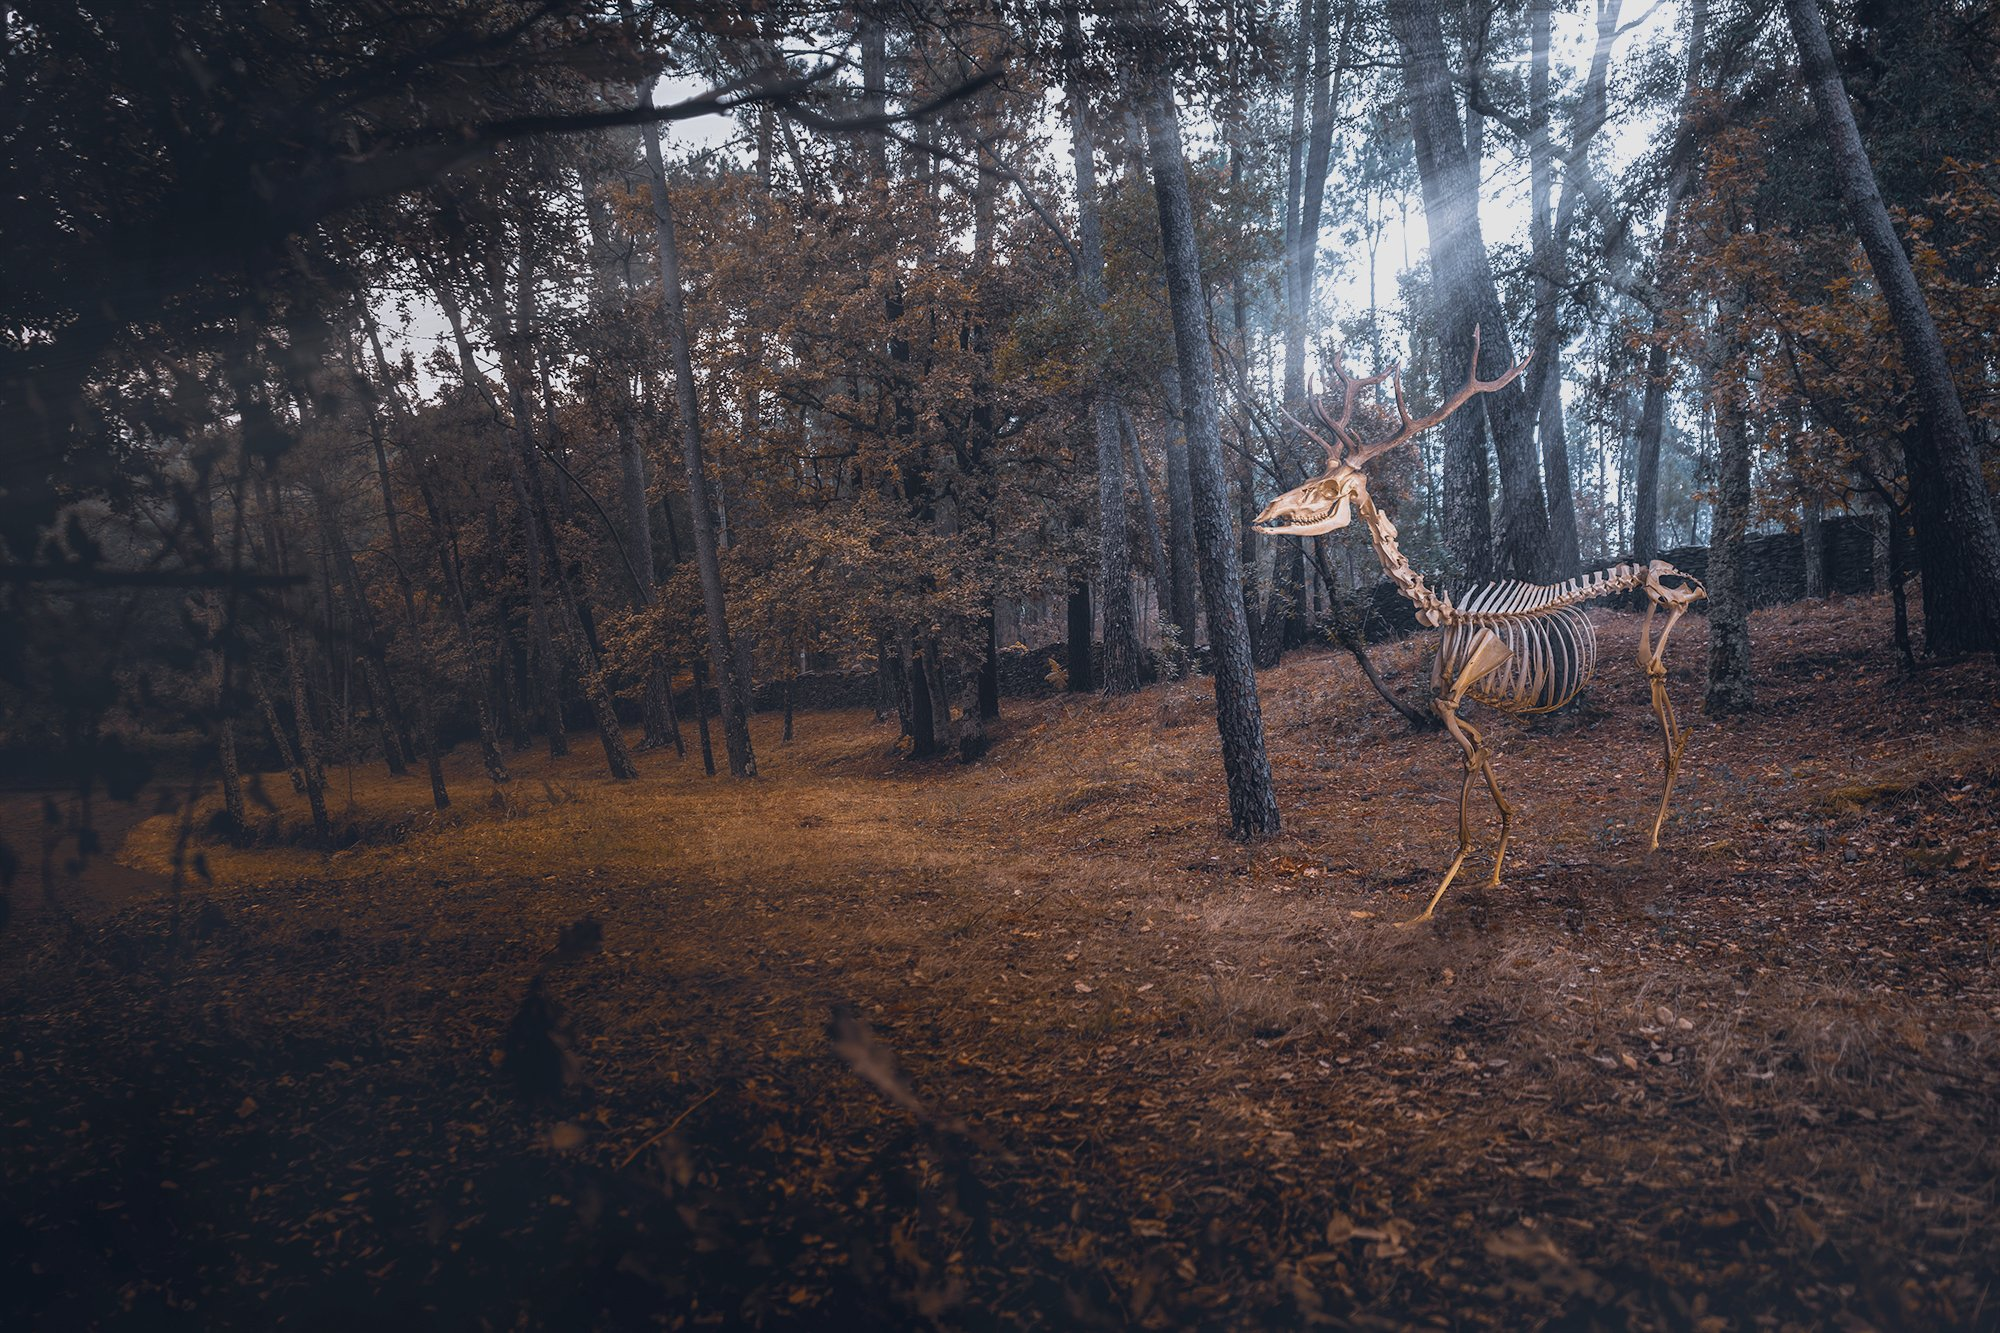 conceptual, nature, earth, planet, animals, forest, envoirenment, Antonio Bernardino